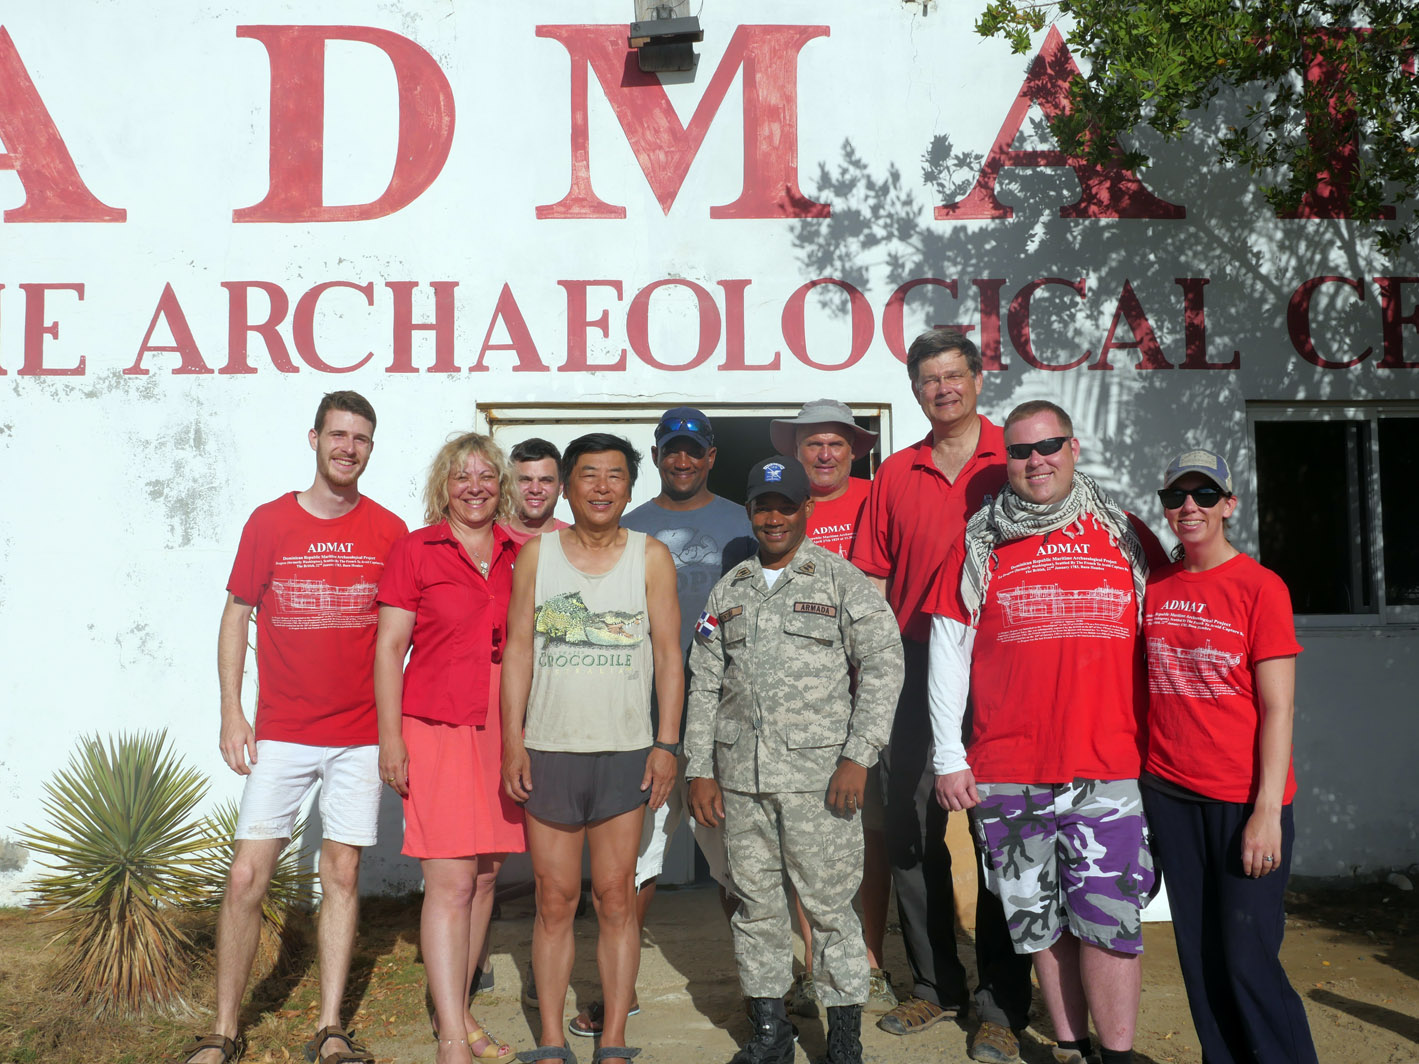 Some of the 2019   Le Dragon   Maritime Archaeological Survey Team, at ADMAT's Centre in Monte Cristi. From Left to Right: Connor Grzesiak, PhD student Florence Prudhomme, Steve Frehn, Bob Yee, Sandy, Lt Venture ONPCS, Project Leader Raimund Krob, Dr. Simon Spooner Project Director, Stephen Able and Jessica Piner.